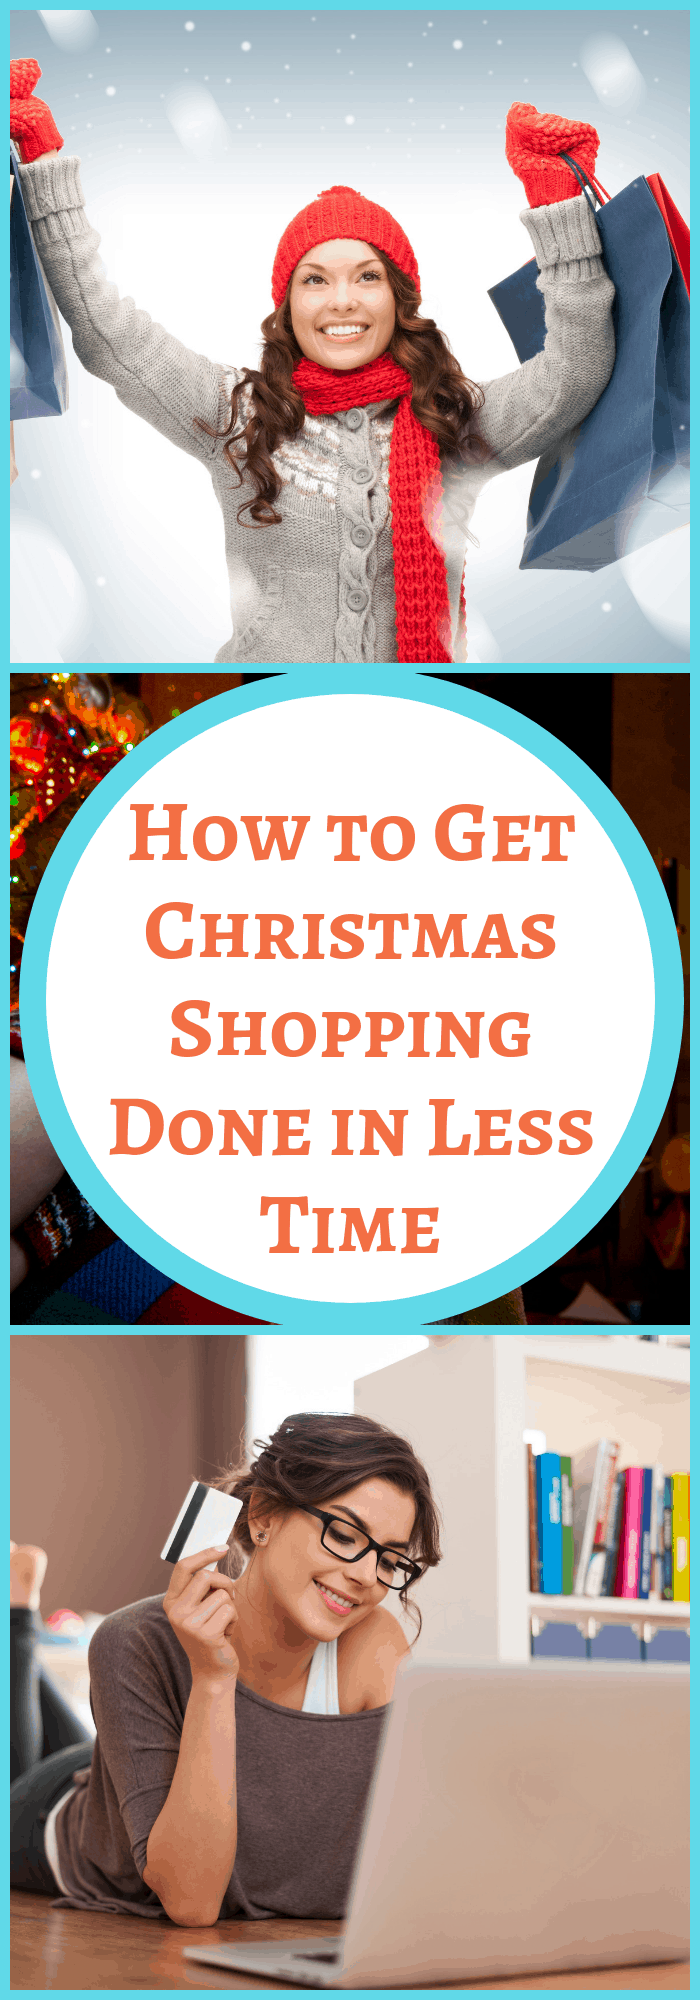 Christmas shopping done in less time